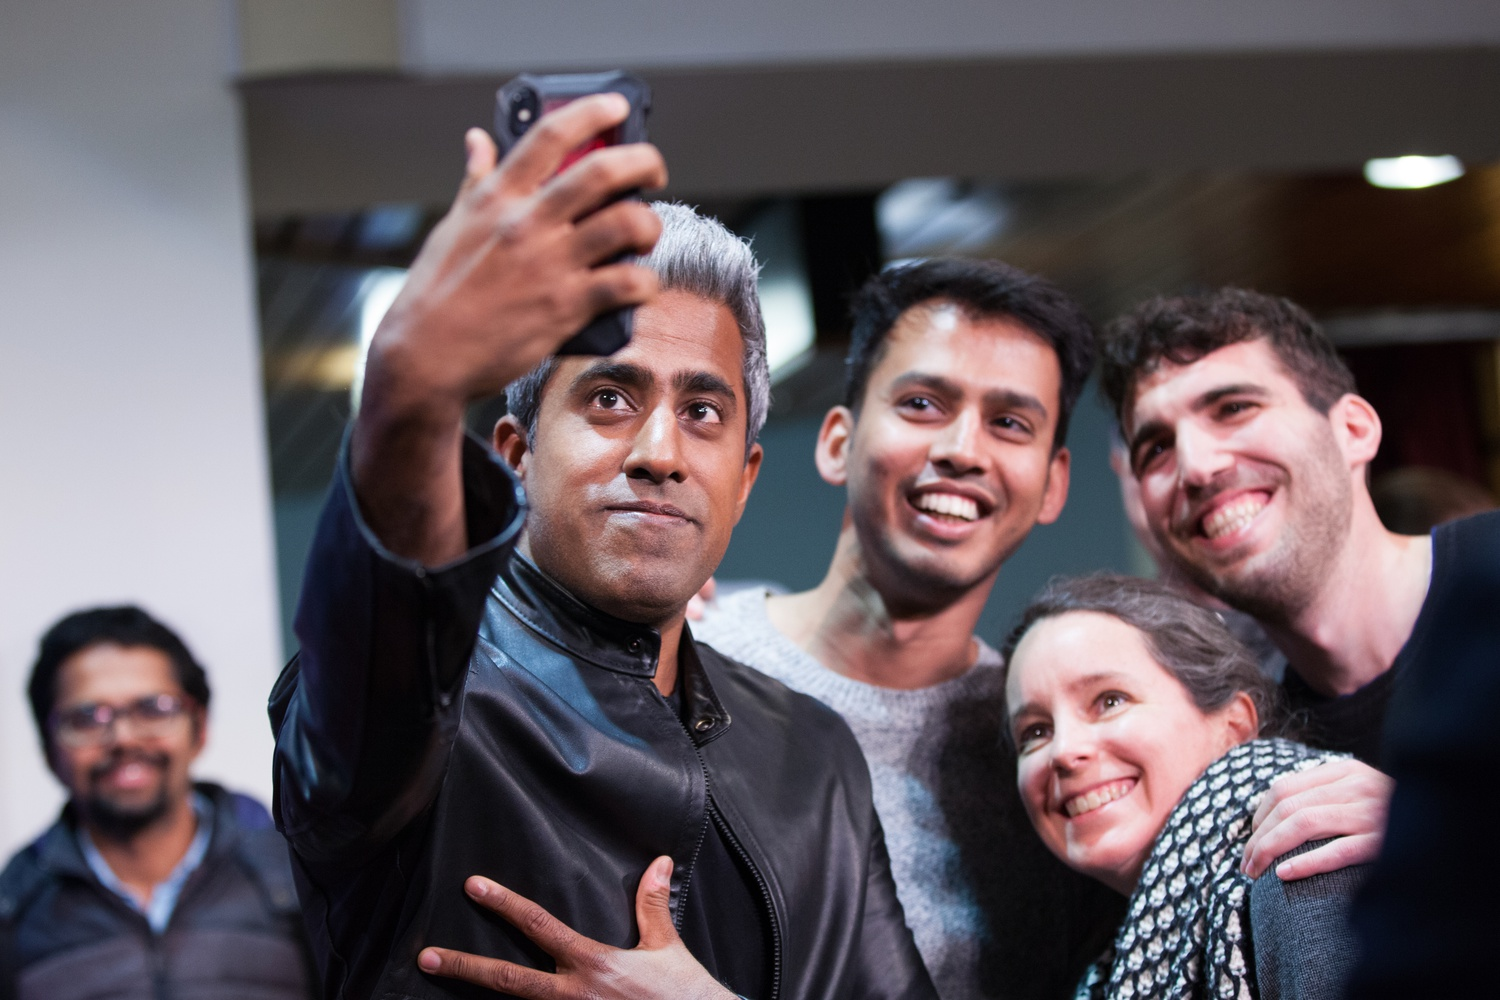 Anand Giridharadas, the author of Winners Take All, poses for a photo at the JFK Jr. Forum Tuesday night.